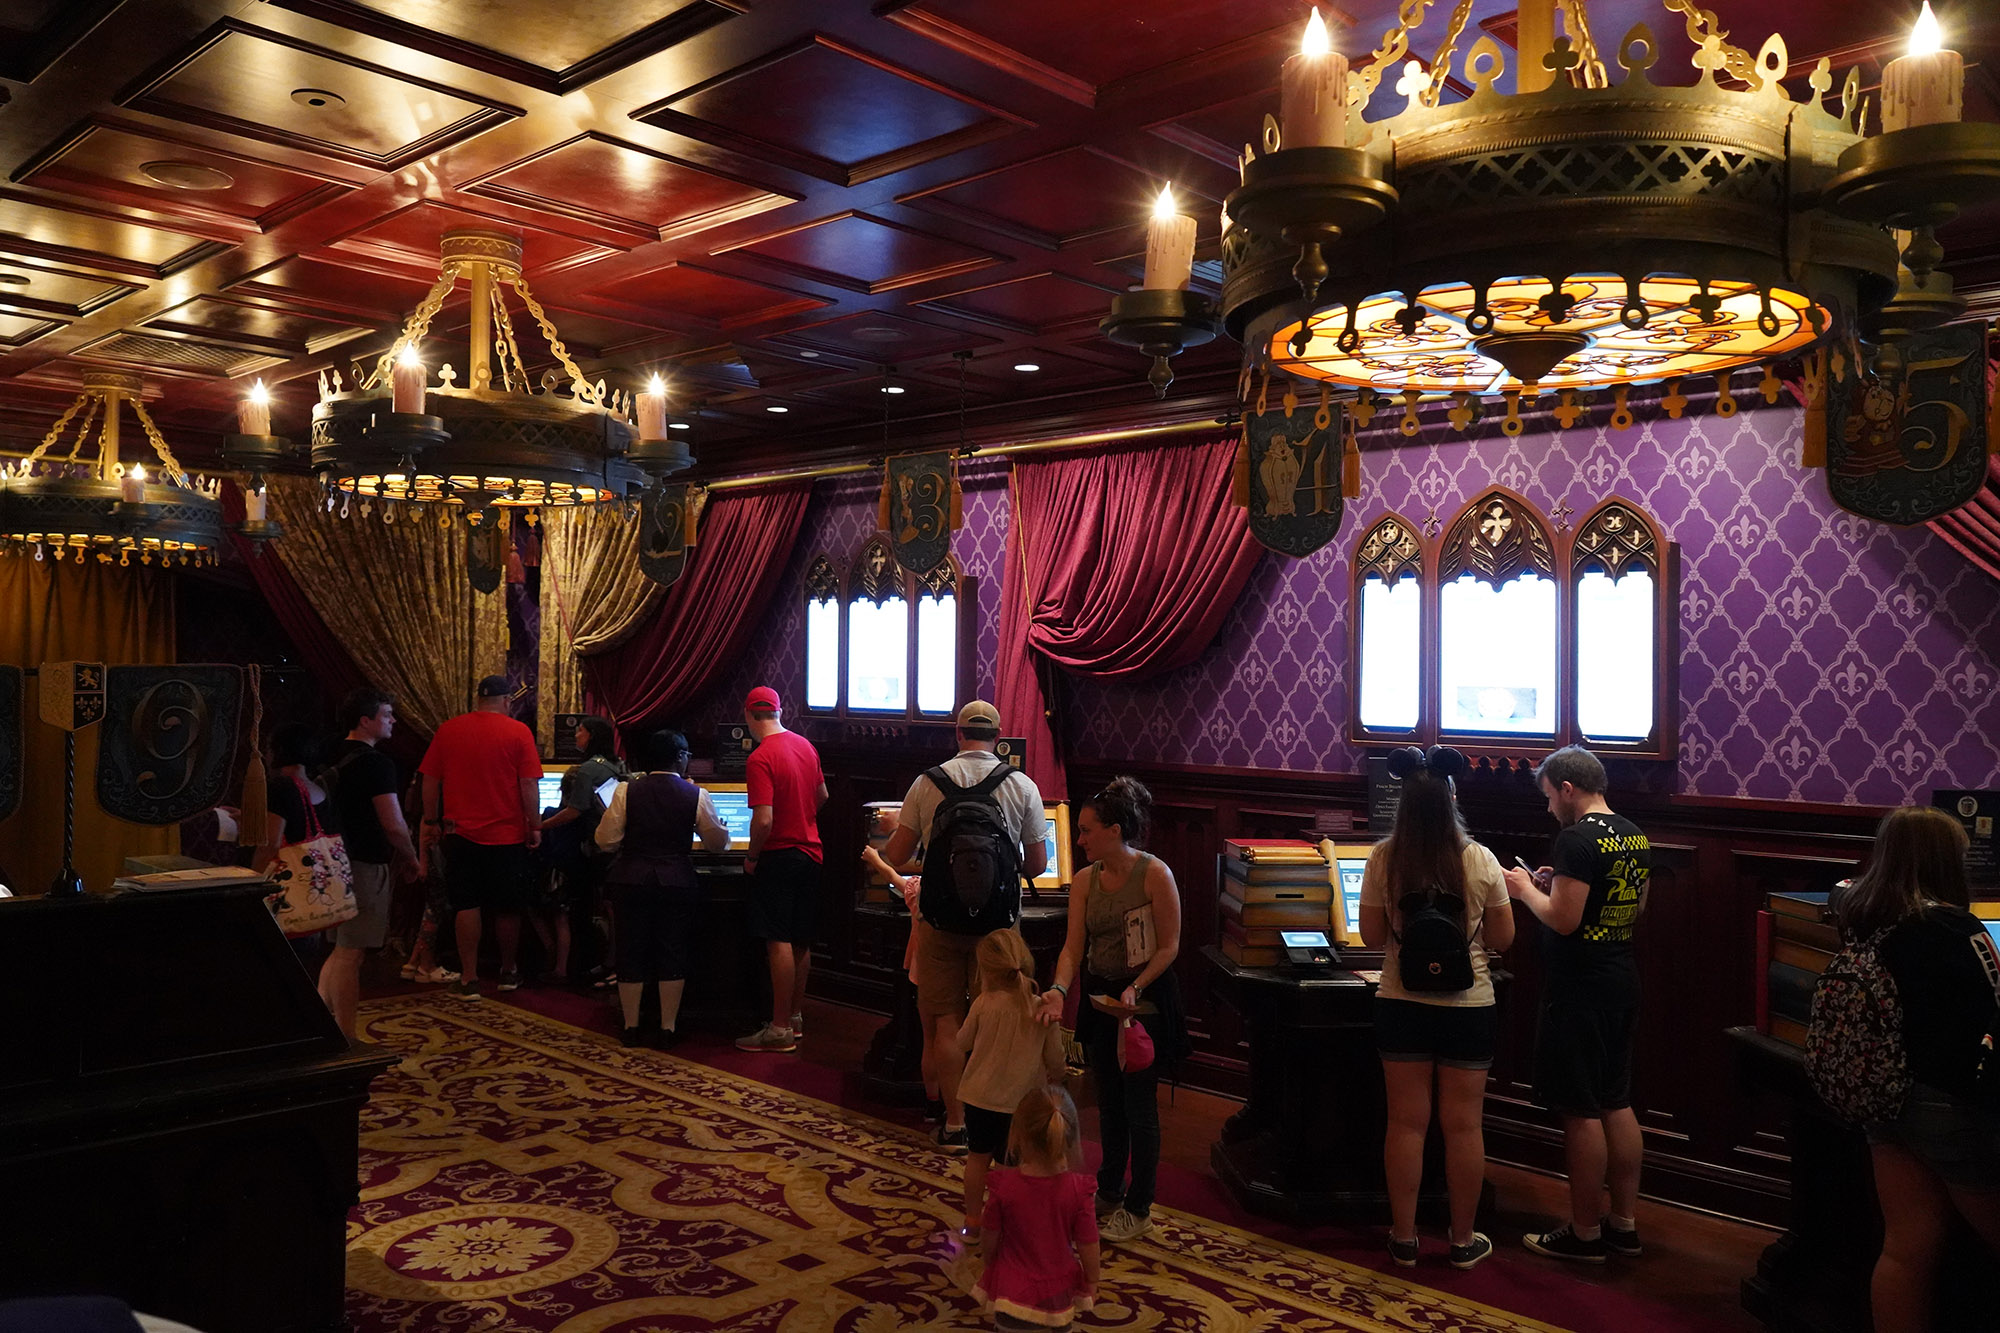 reservations for Be Our Guest